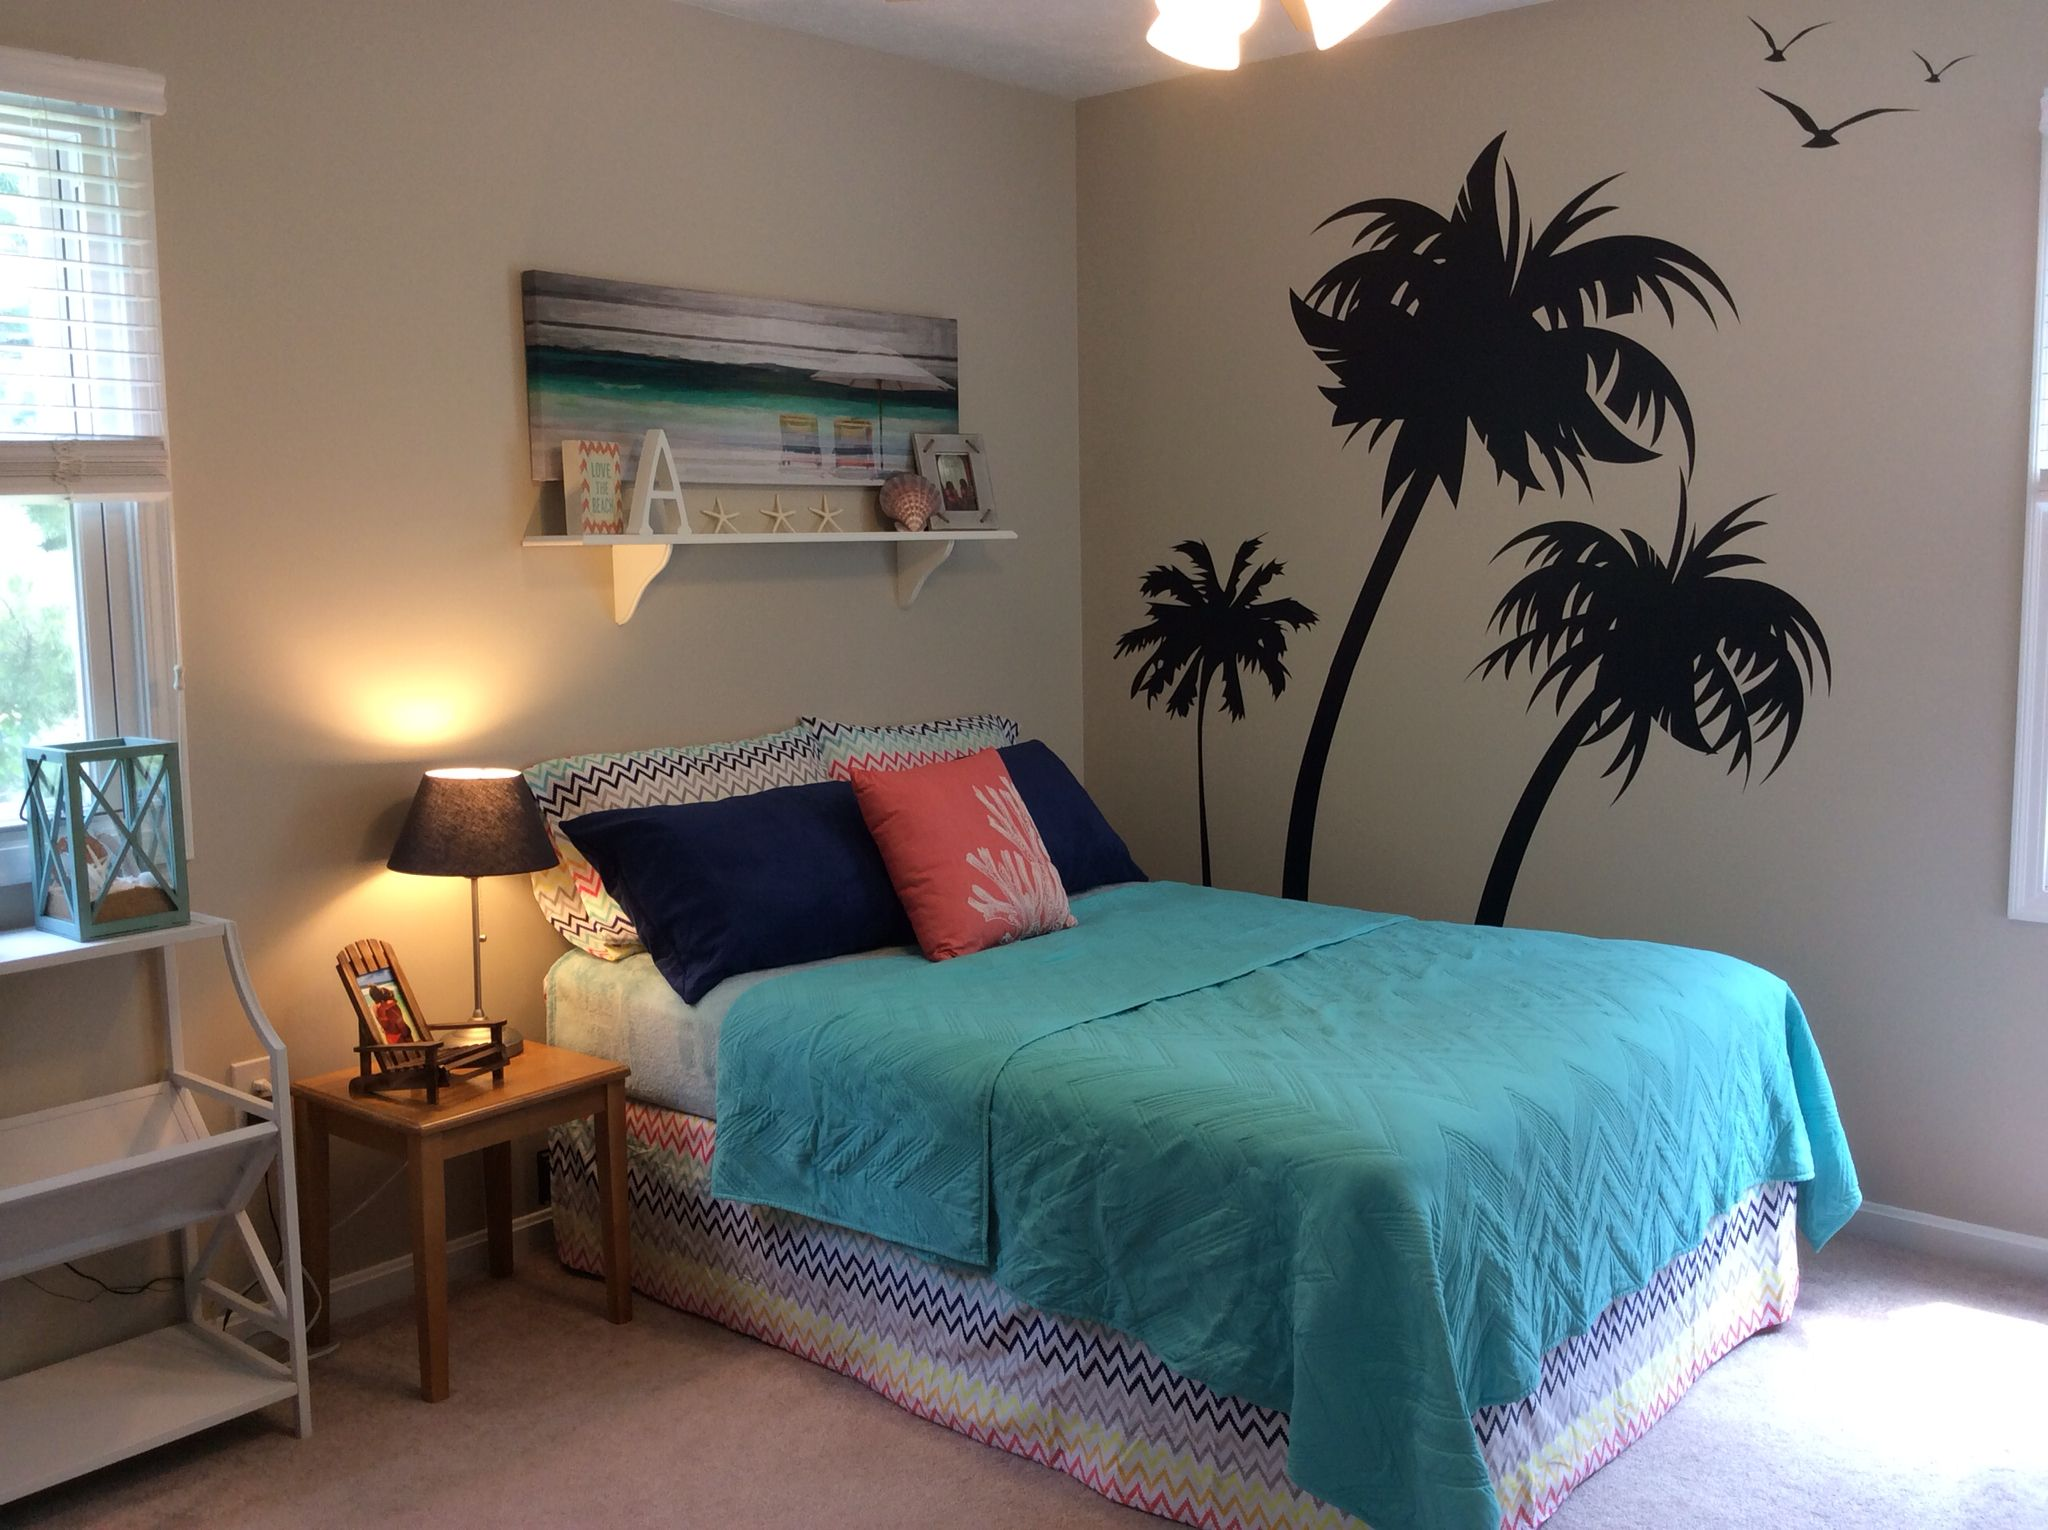 Room Update For Teen Girl Beach Theme With Lots Of